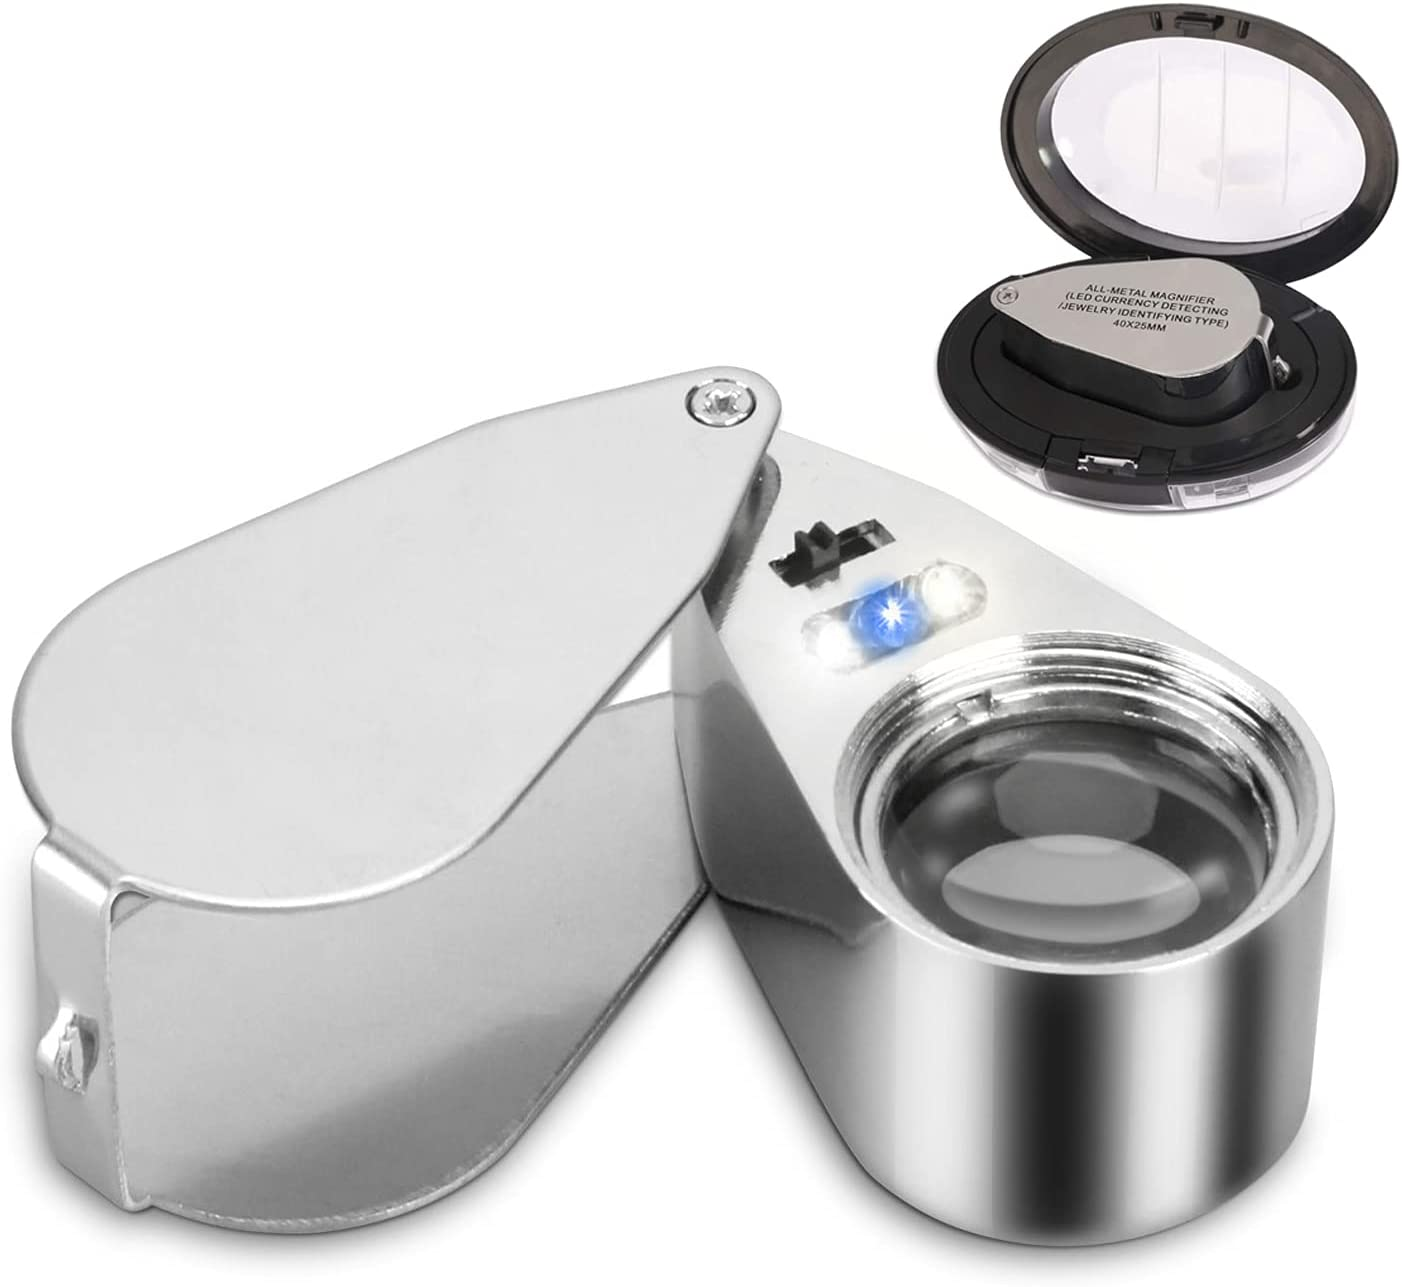 Directly managed store 40X Metal Illuminated Jewelers Loop Miami Mall Glass Loupe M JLY Magnifier